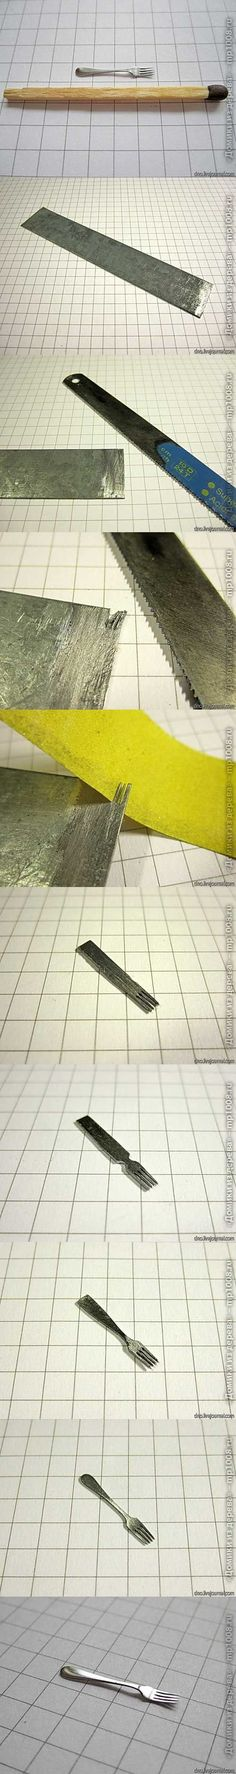 Picture tutorial for making realistic dollhouse cutlery